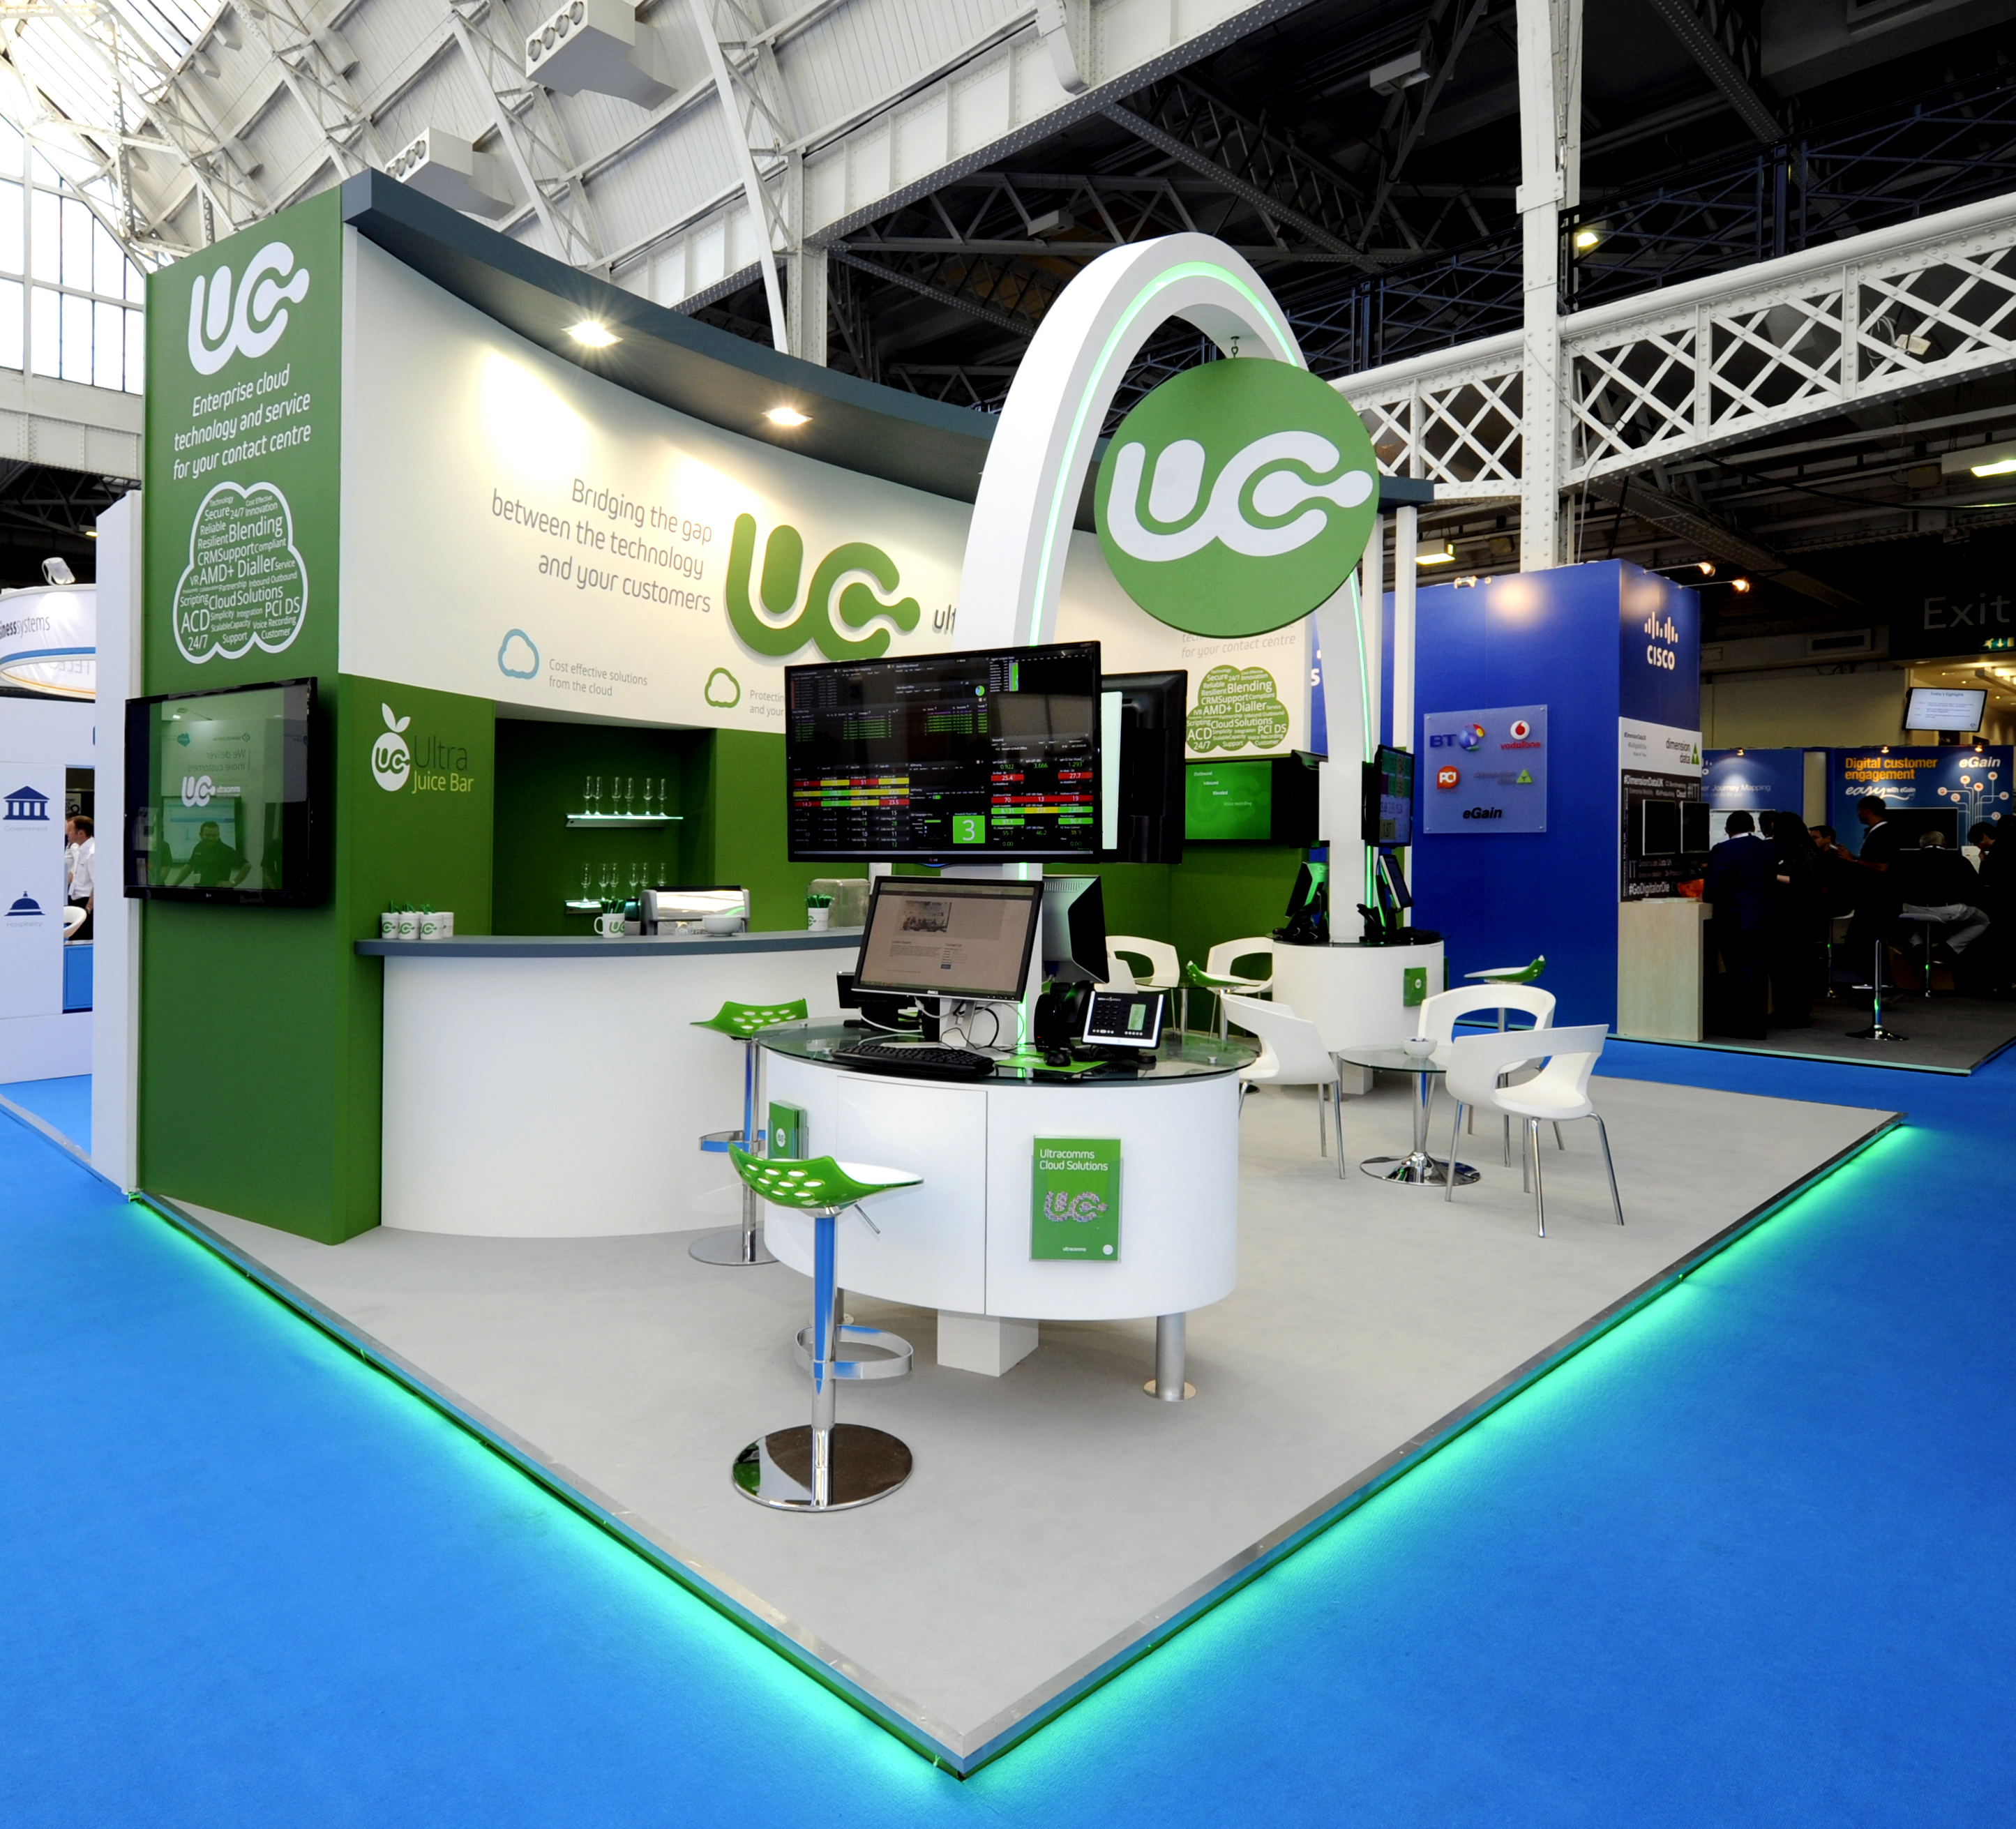 Exhibition Stand Design : Exhibition stand design inspiration